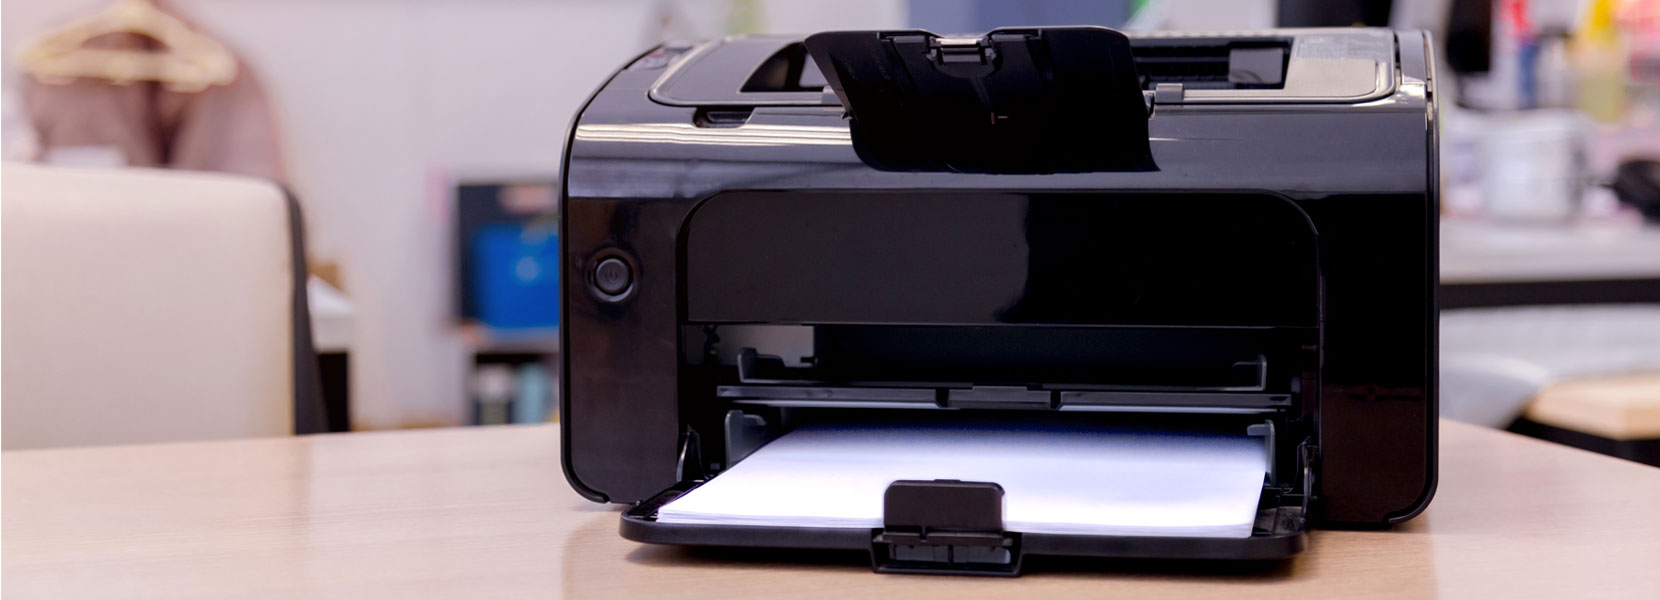 A-printer-on-a-desk